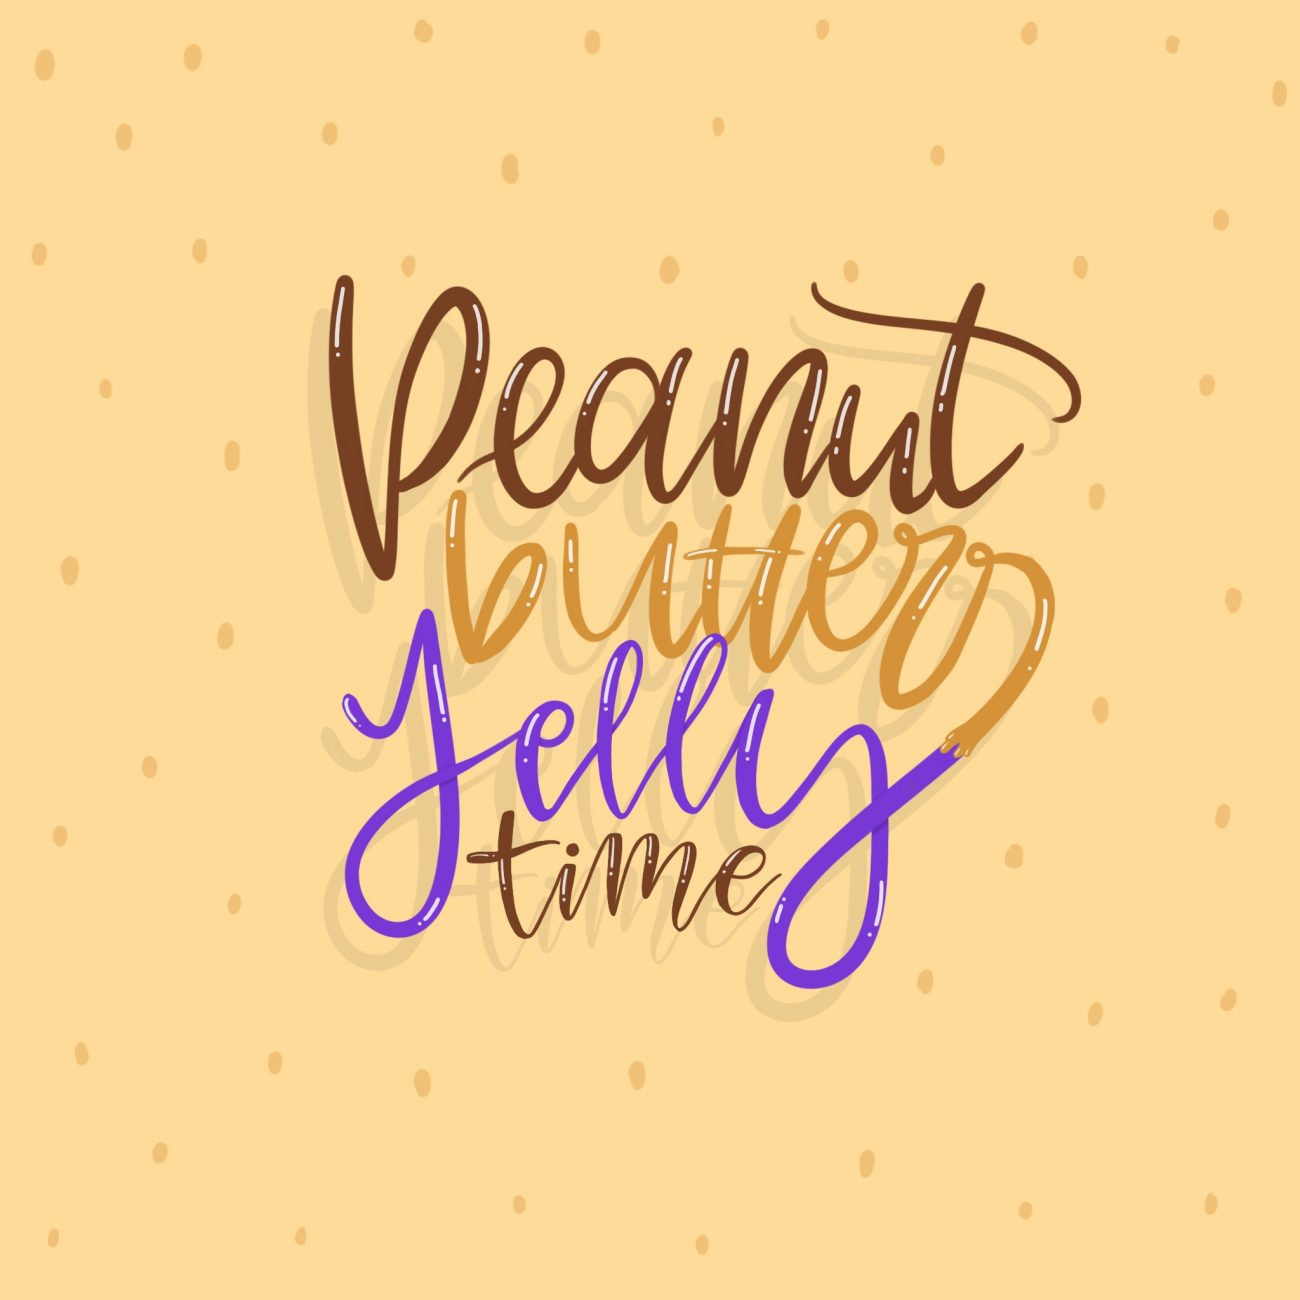 Lettering - Peanut Butter Jelly Time